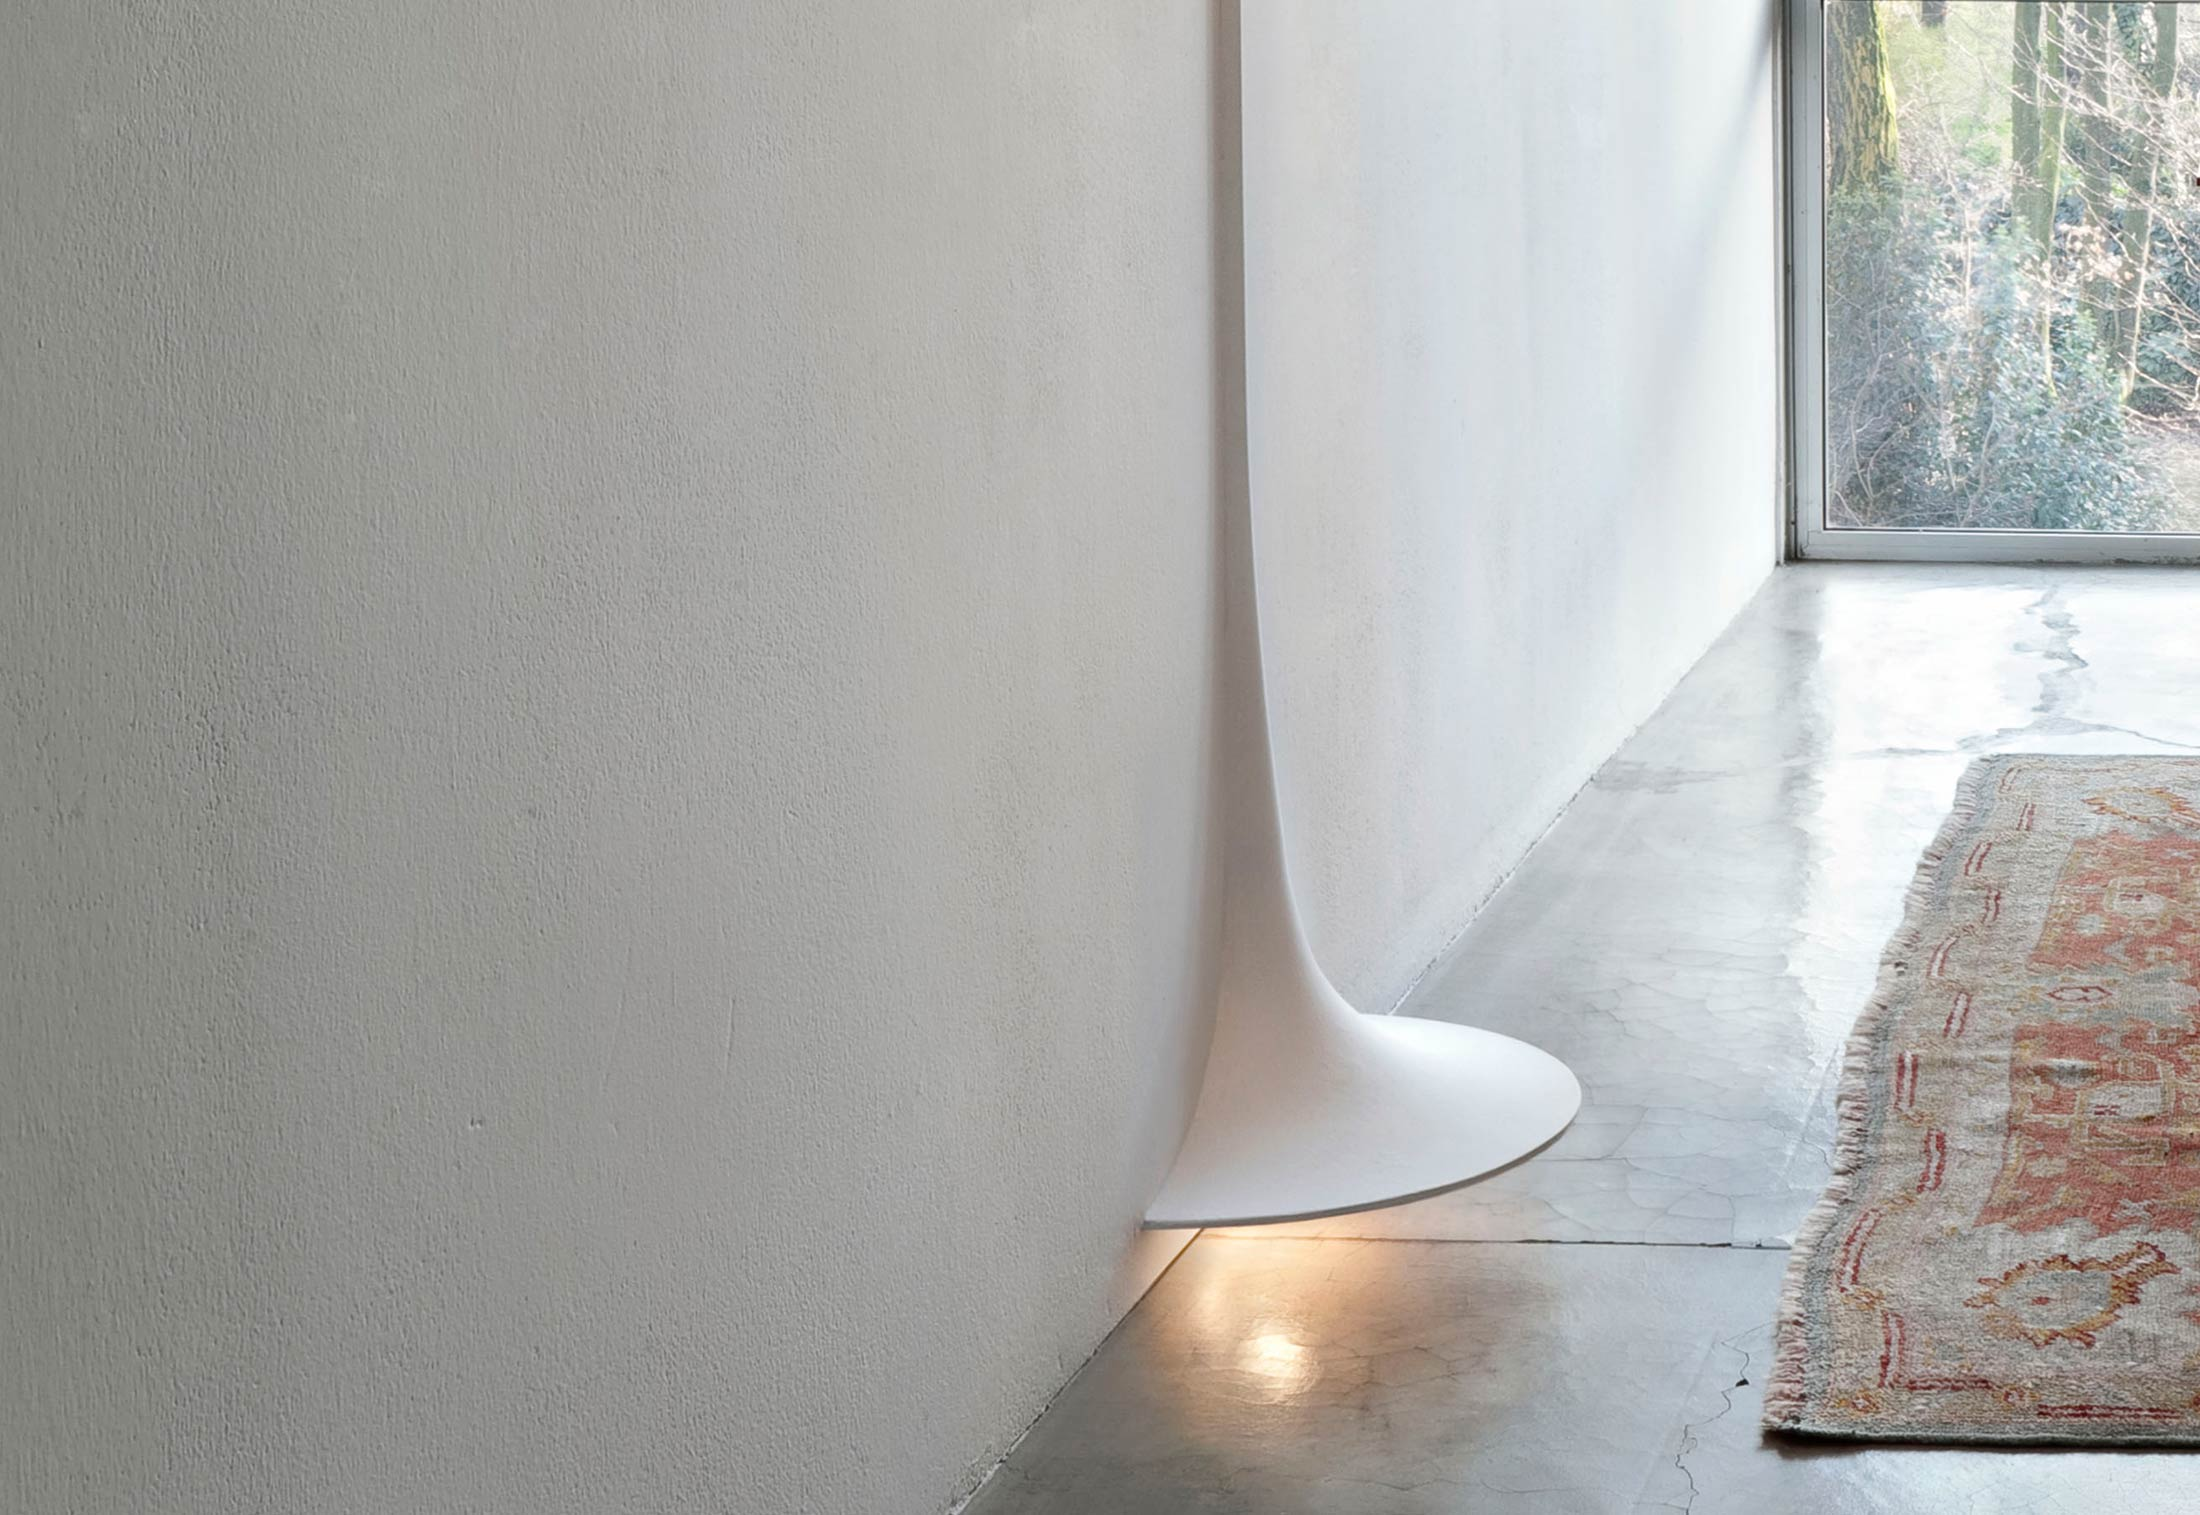 Spun Light Soft Architecture Wall Lamp By Flos